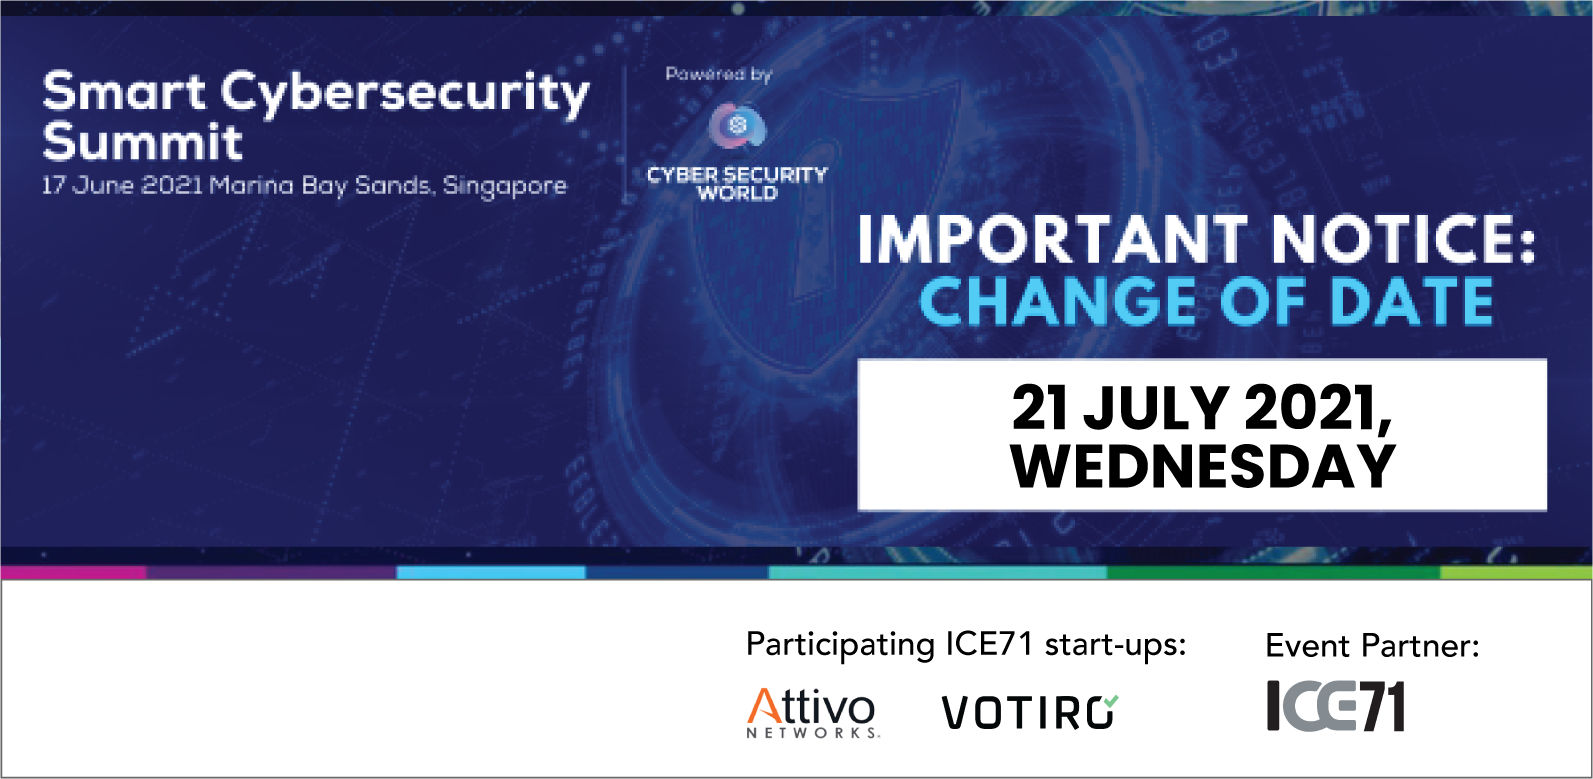 ICE71 at Smart Cybersecurity Summit